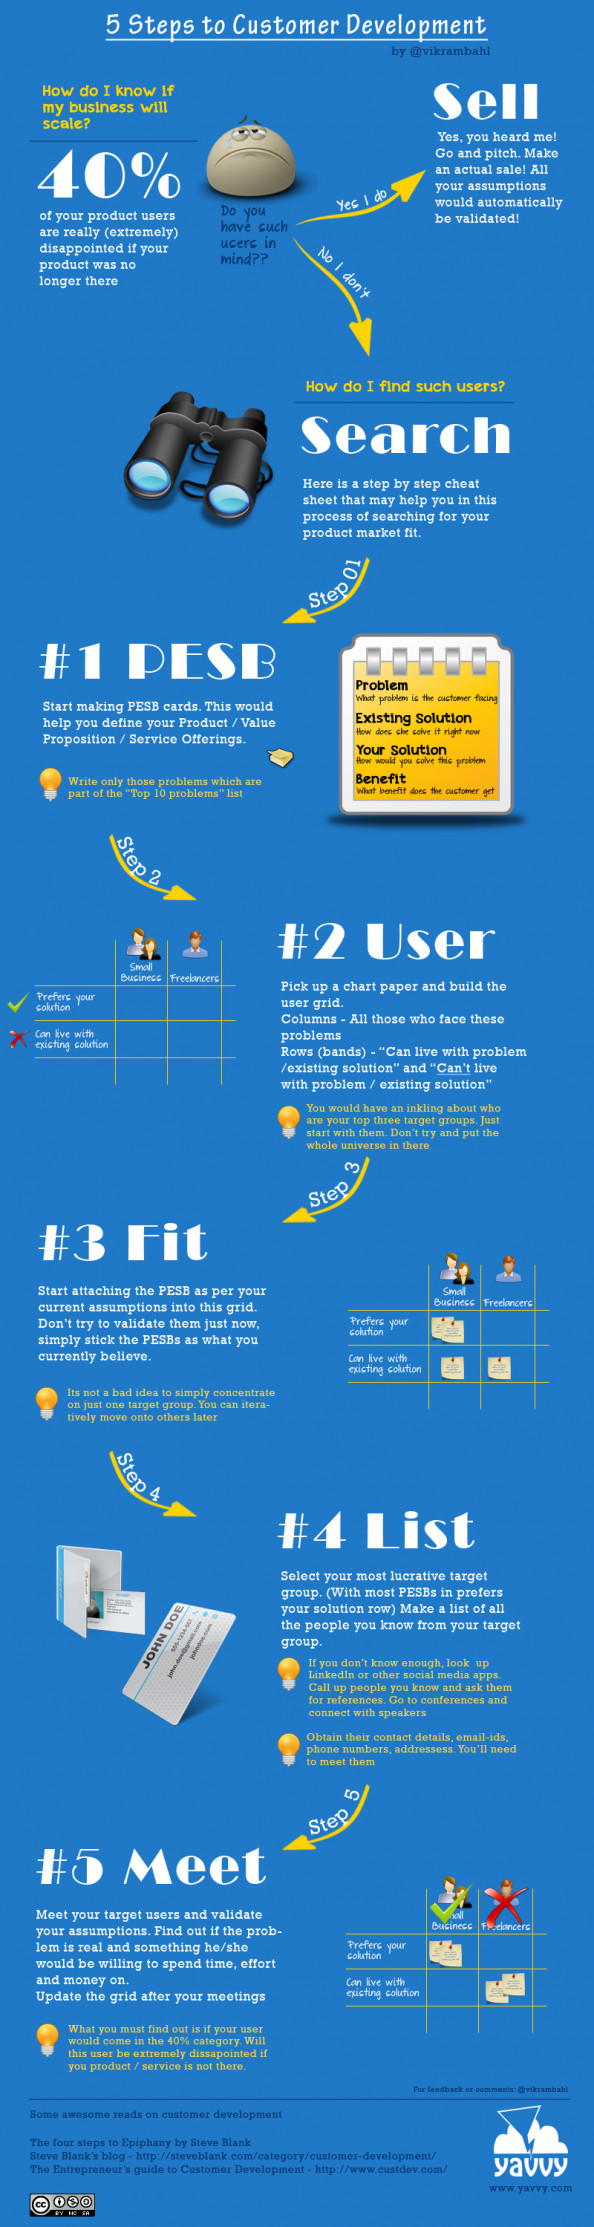 Customer Development Infographic